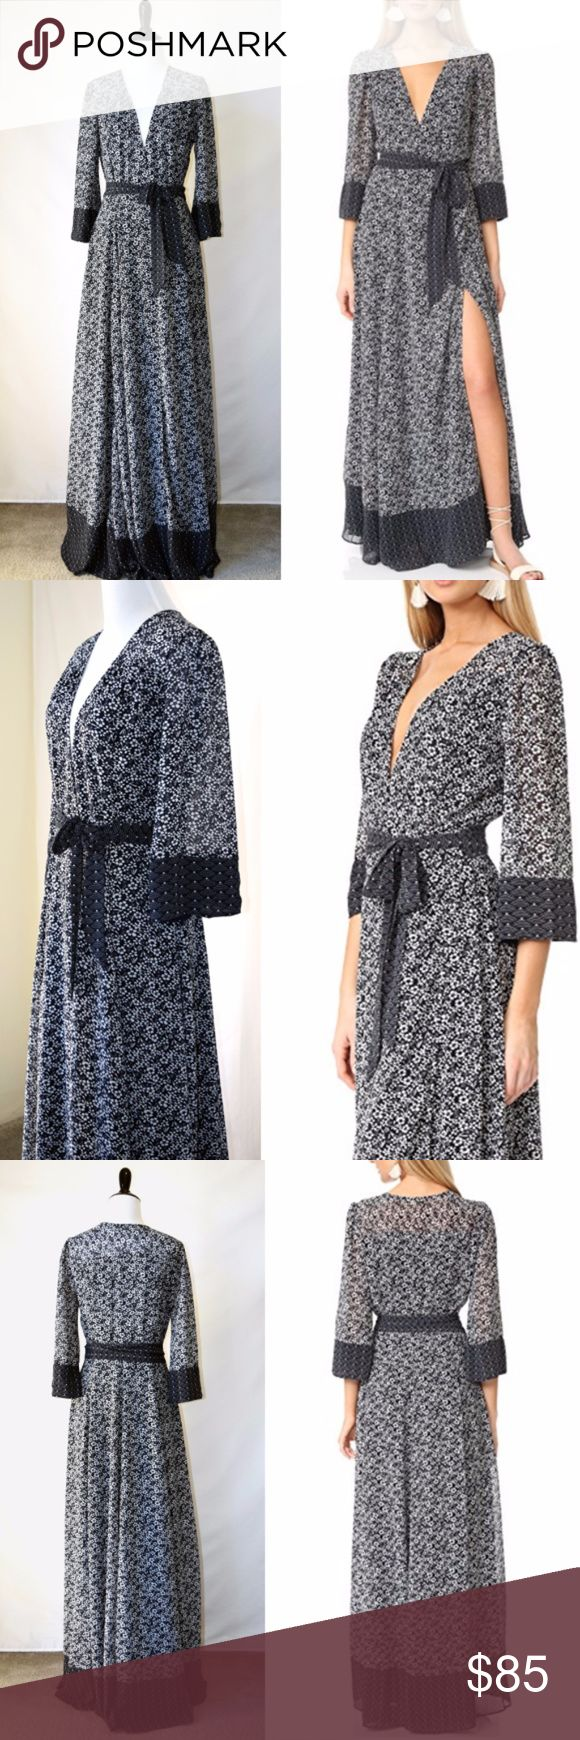 NWOT Tularosa Maxi Wrap Navy Dress New without tag Tularosa  A floral-print TULAROSA wrap-dress, in a glamorous, maxi silhouette The self-belt tie and edges are trimmed with fan-print banding 3/4 sleeves Lined  Fabric: Chiffon. 100% polyester. Hand wash. Length: 57in / 145cm, from shoulder (Measurements from size S) No care label Tularosa Dresses Maxi